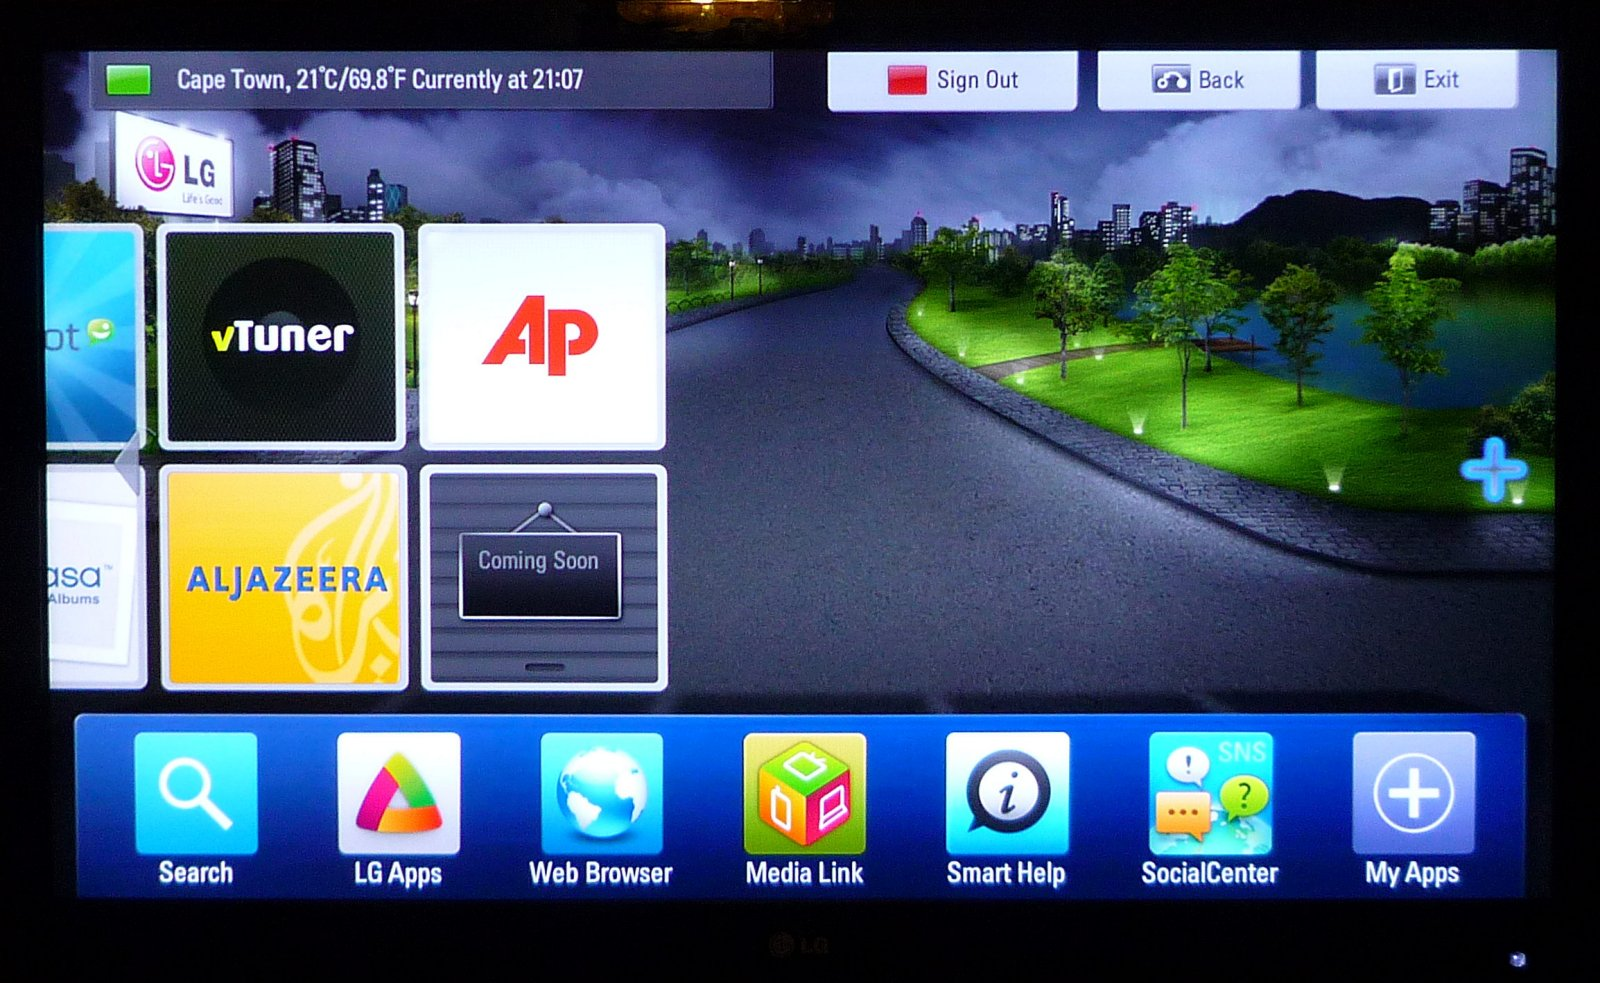 LG TV - Premium apps screen 2 of 2